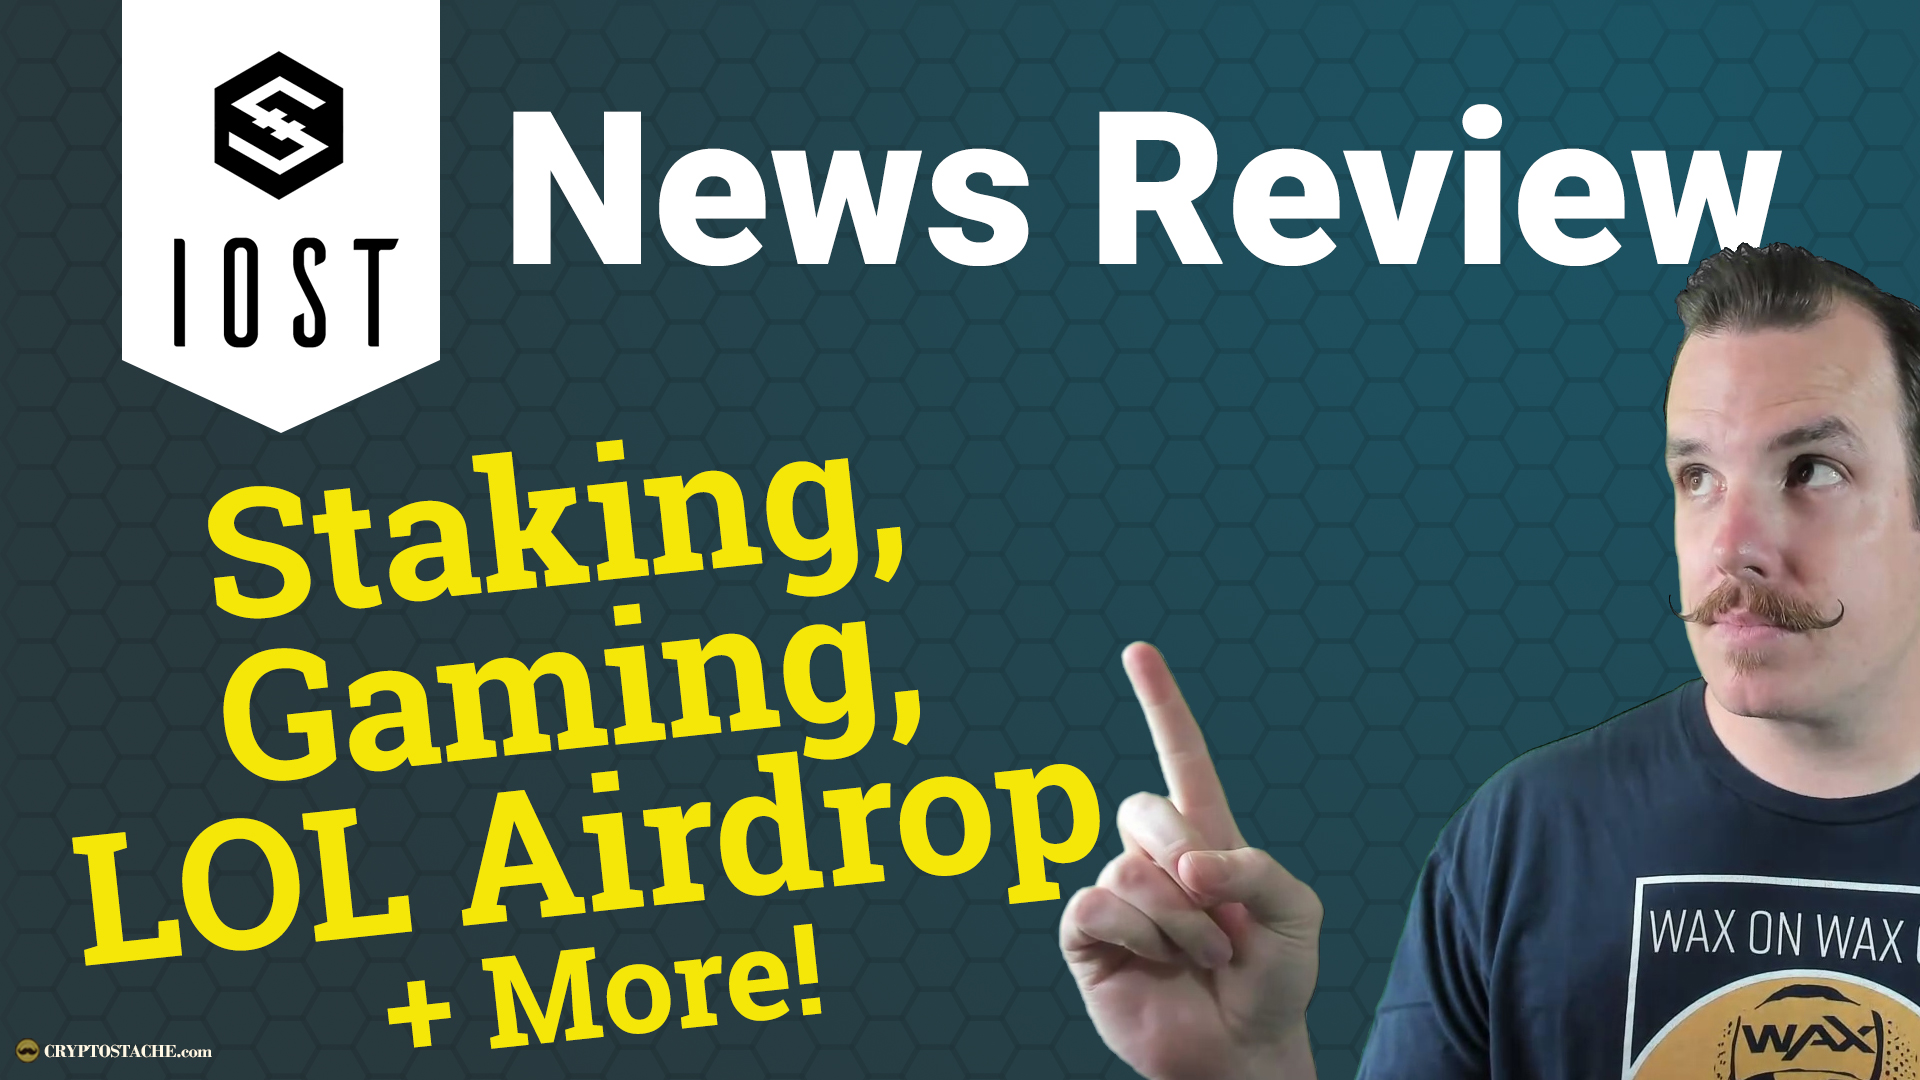 IOST News Review - Staking, Gaming, LOL Airdrop & More